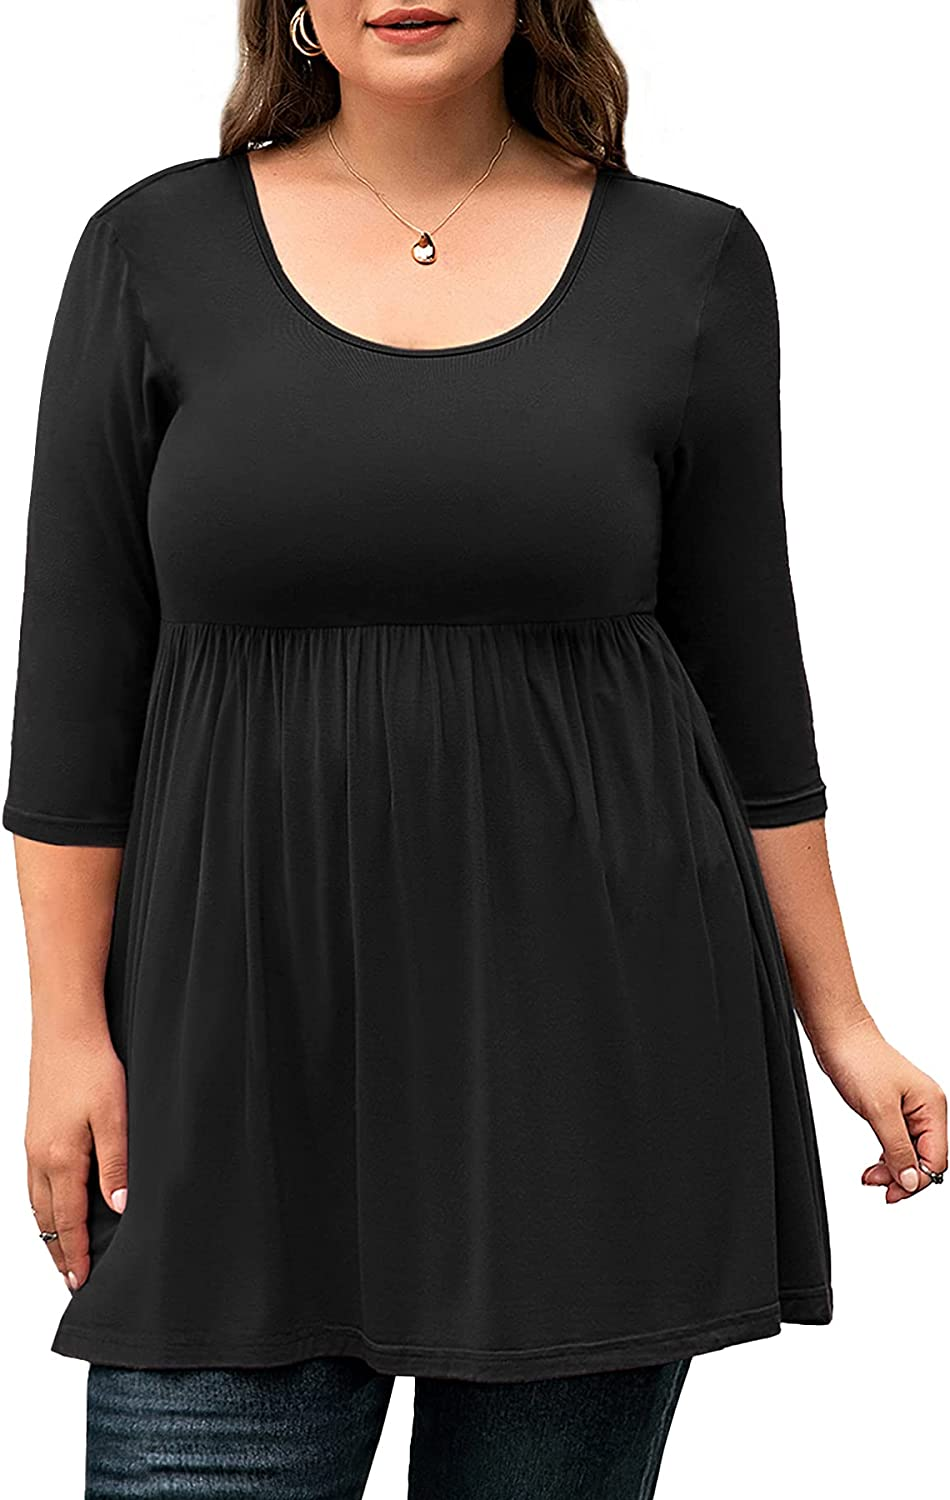 Auslook Women's Plus Size Tunic 3/4 Sleeve Scoop Neck Top Pleated Flowy Loose Fit T Shirt